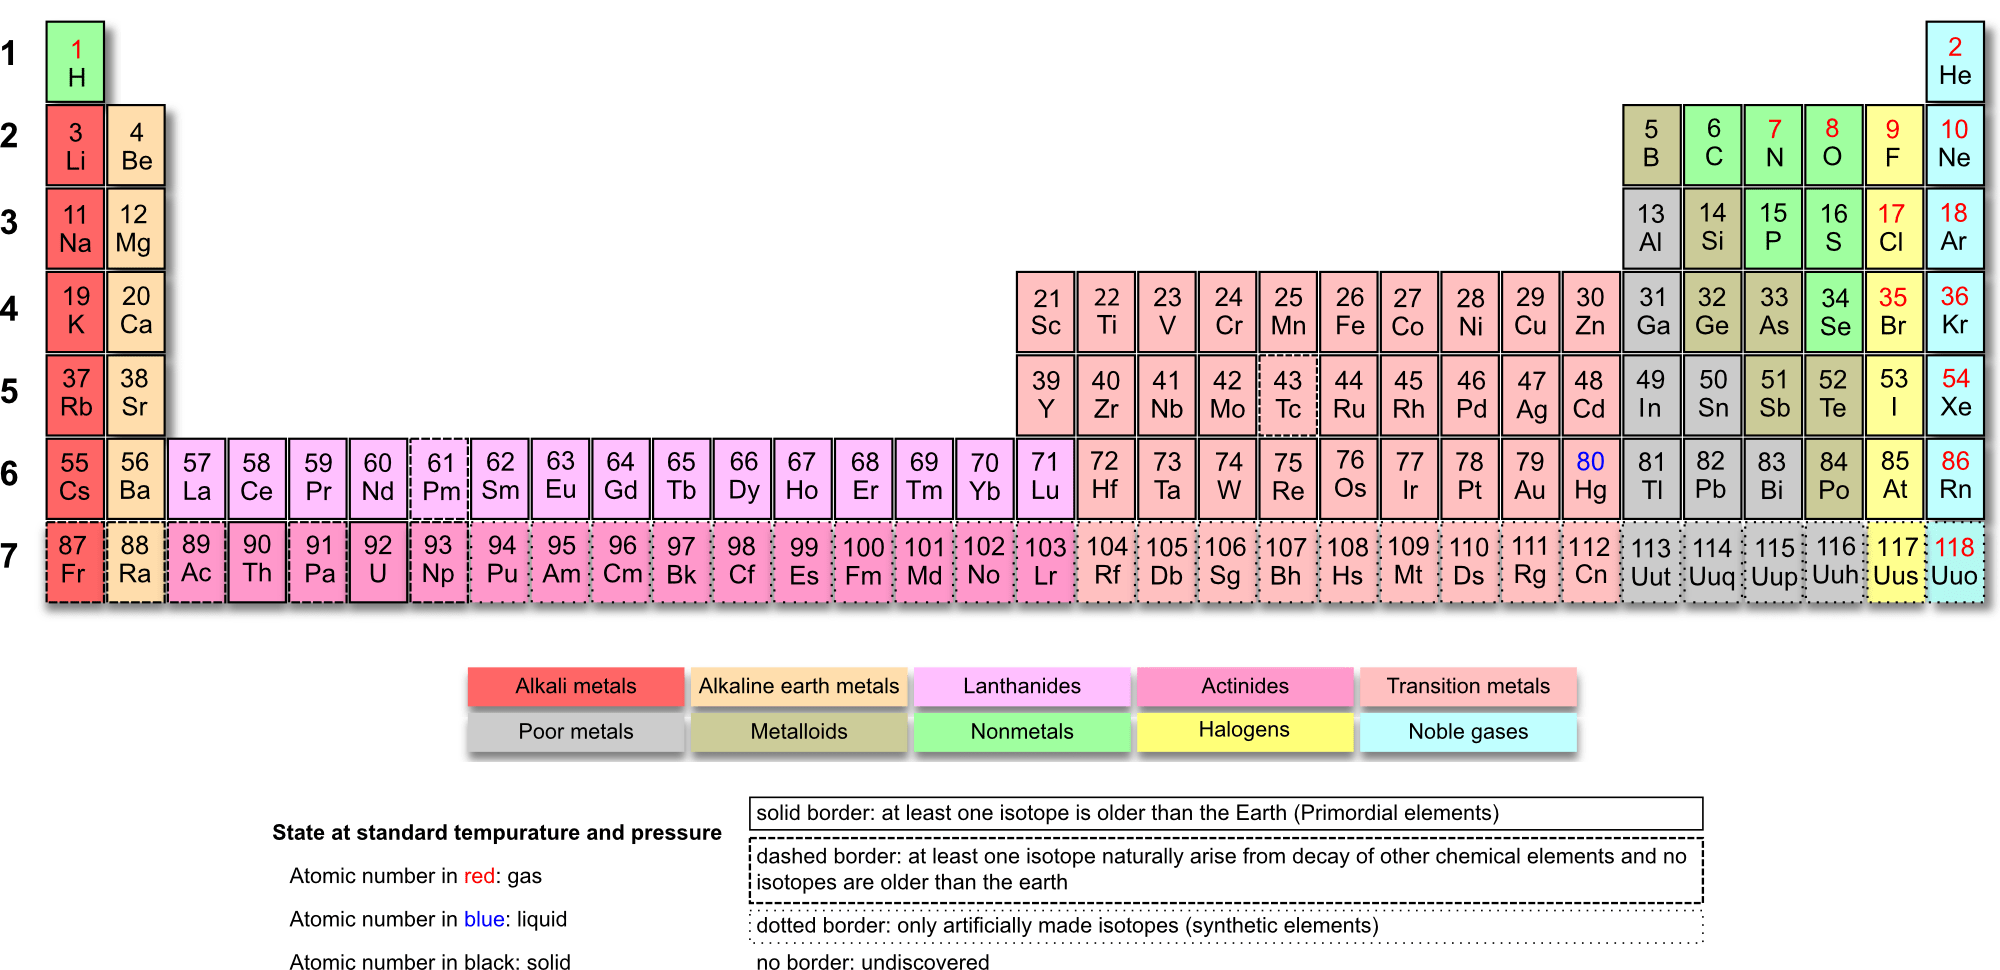 Free online, printable periodic tables. Tons of them